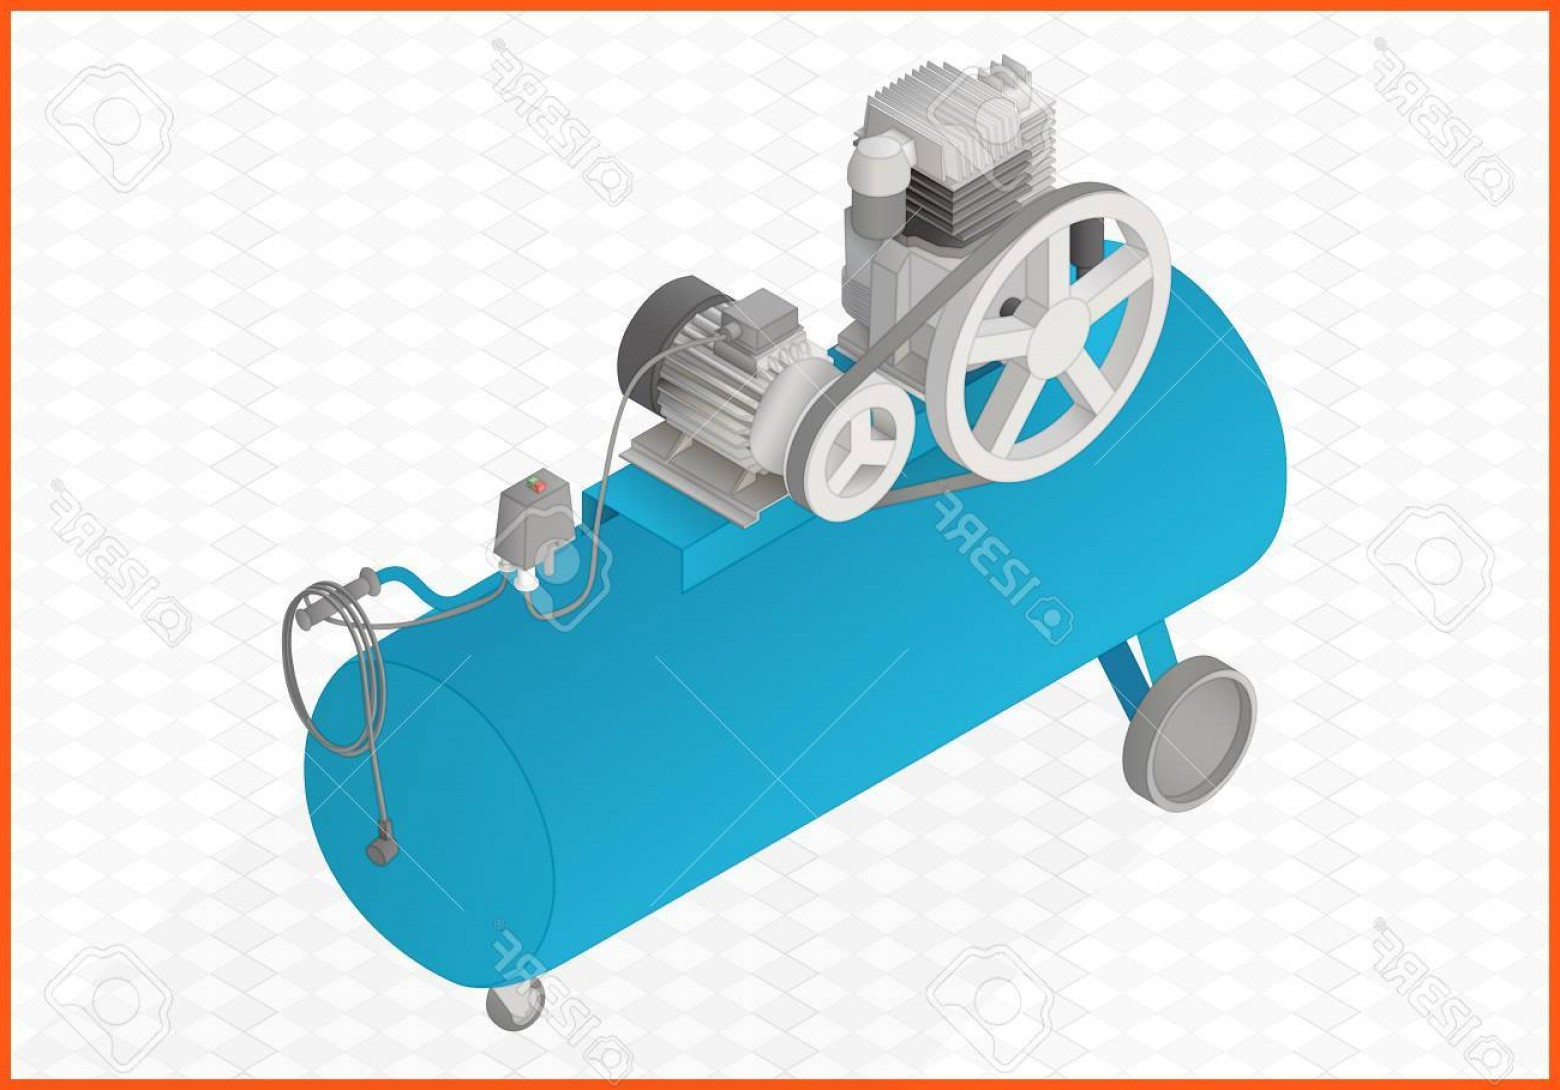 Vector Power On Board Compressor: Photostock Vector Pneumatic Compressor Isometric Perspective View Flat D Illustration